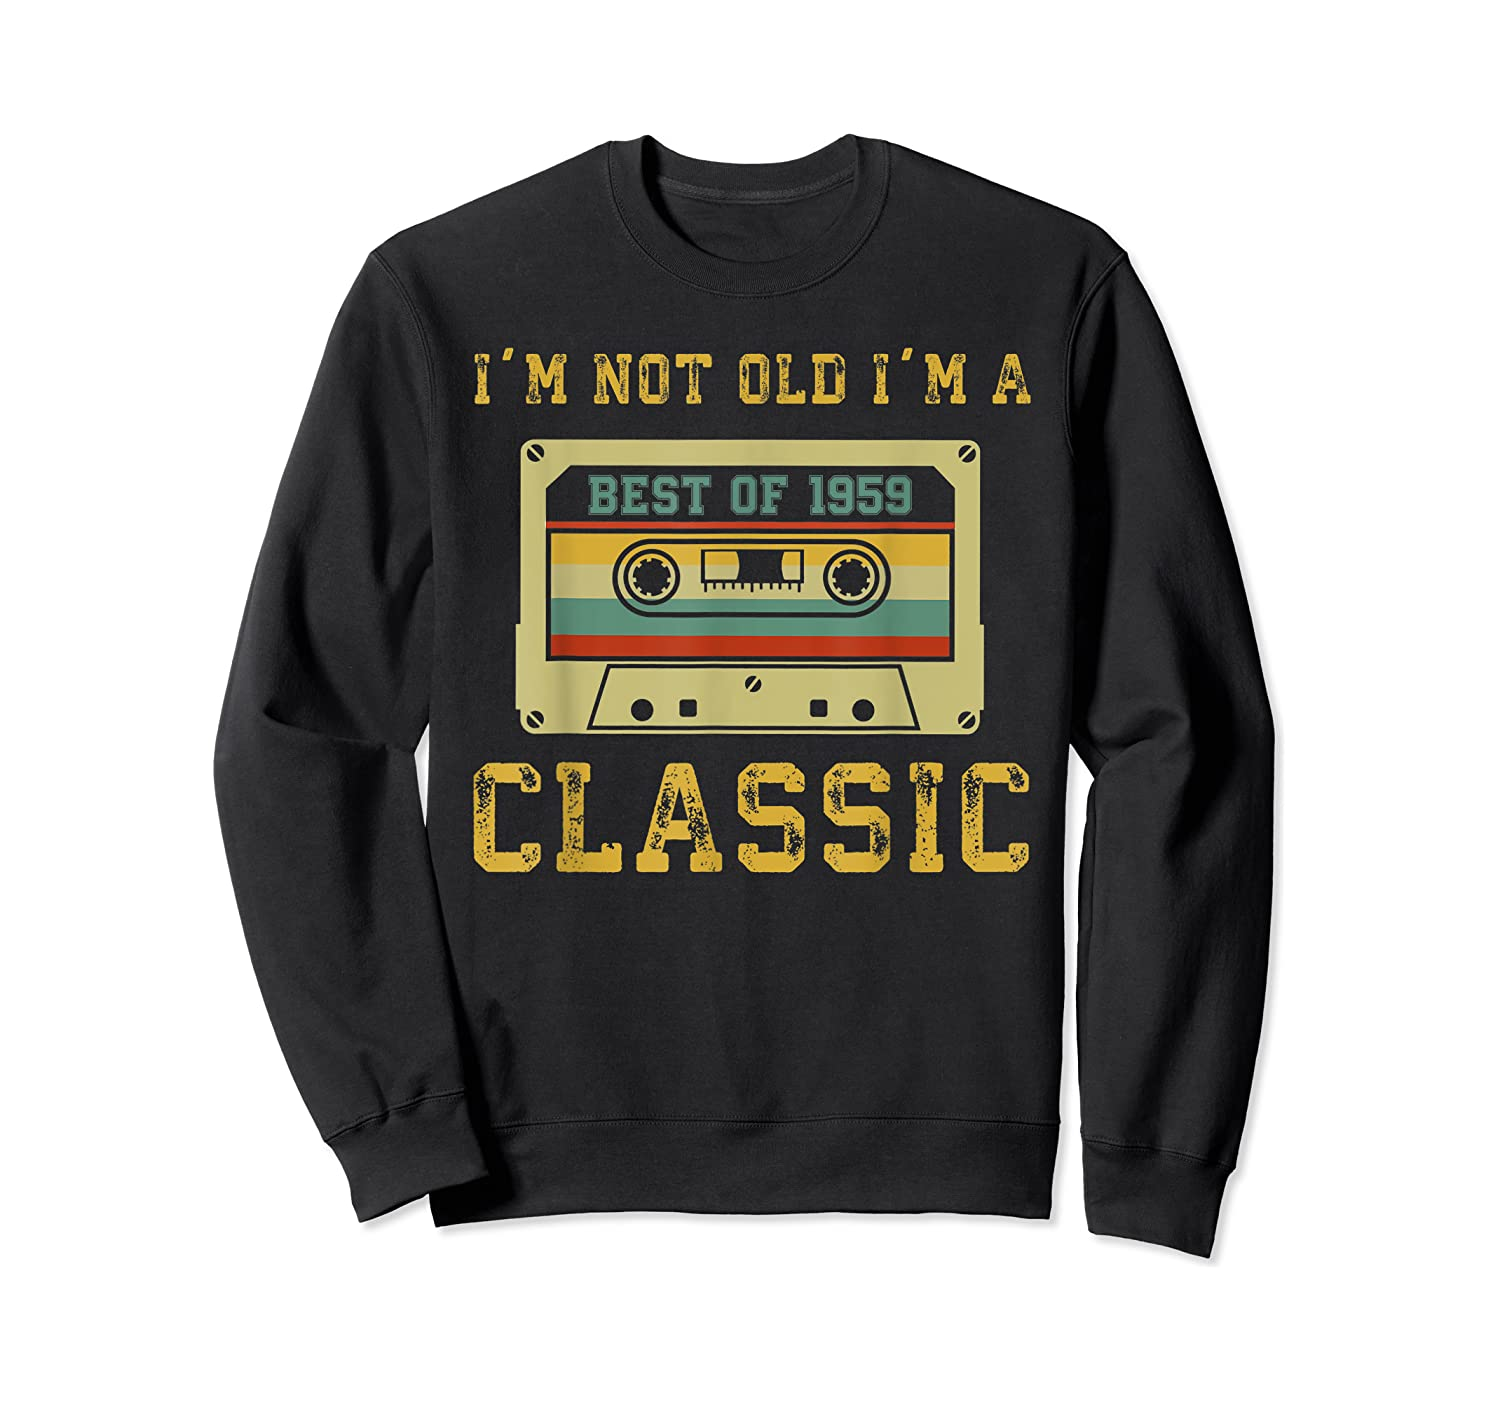 Vintage Cassette I'm Not Old I'm A Classic 1959 60th Shirts Crewneck Sweater